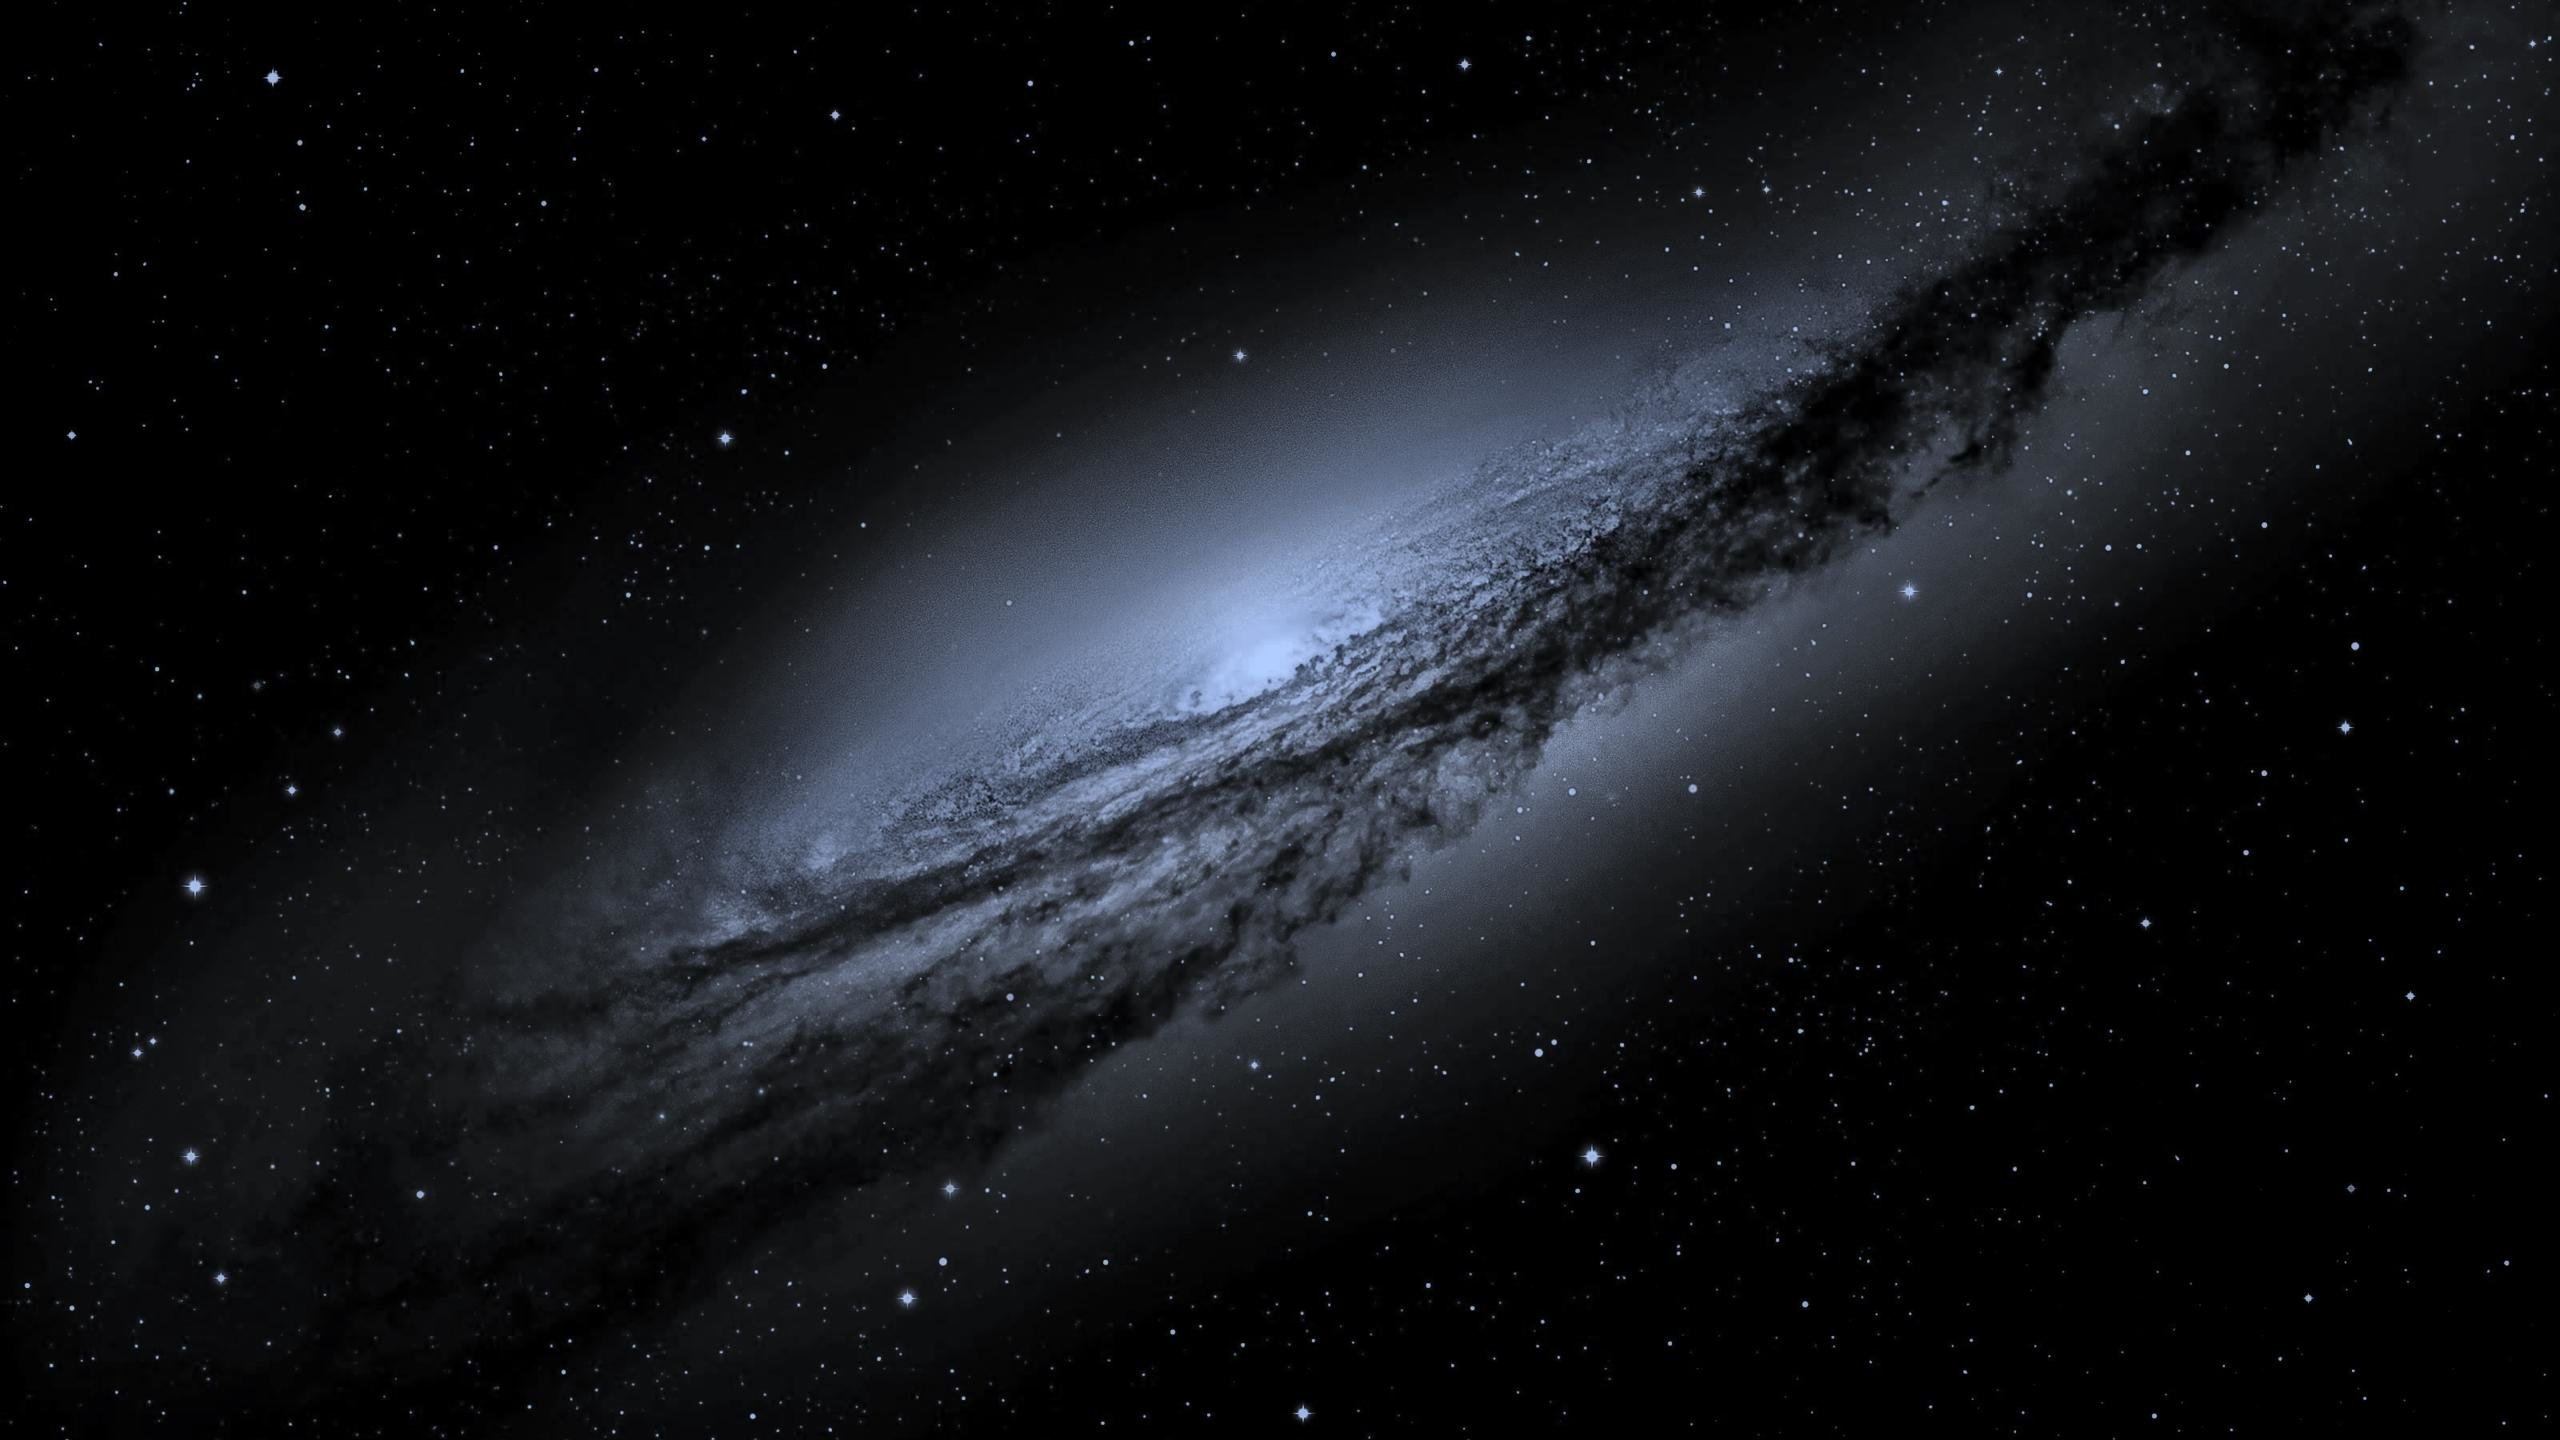 Galaxy Wallpapers 2560x1440 Desktop Backgrounds